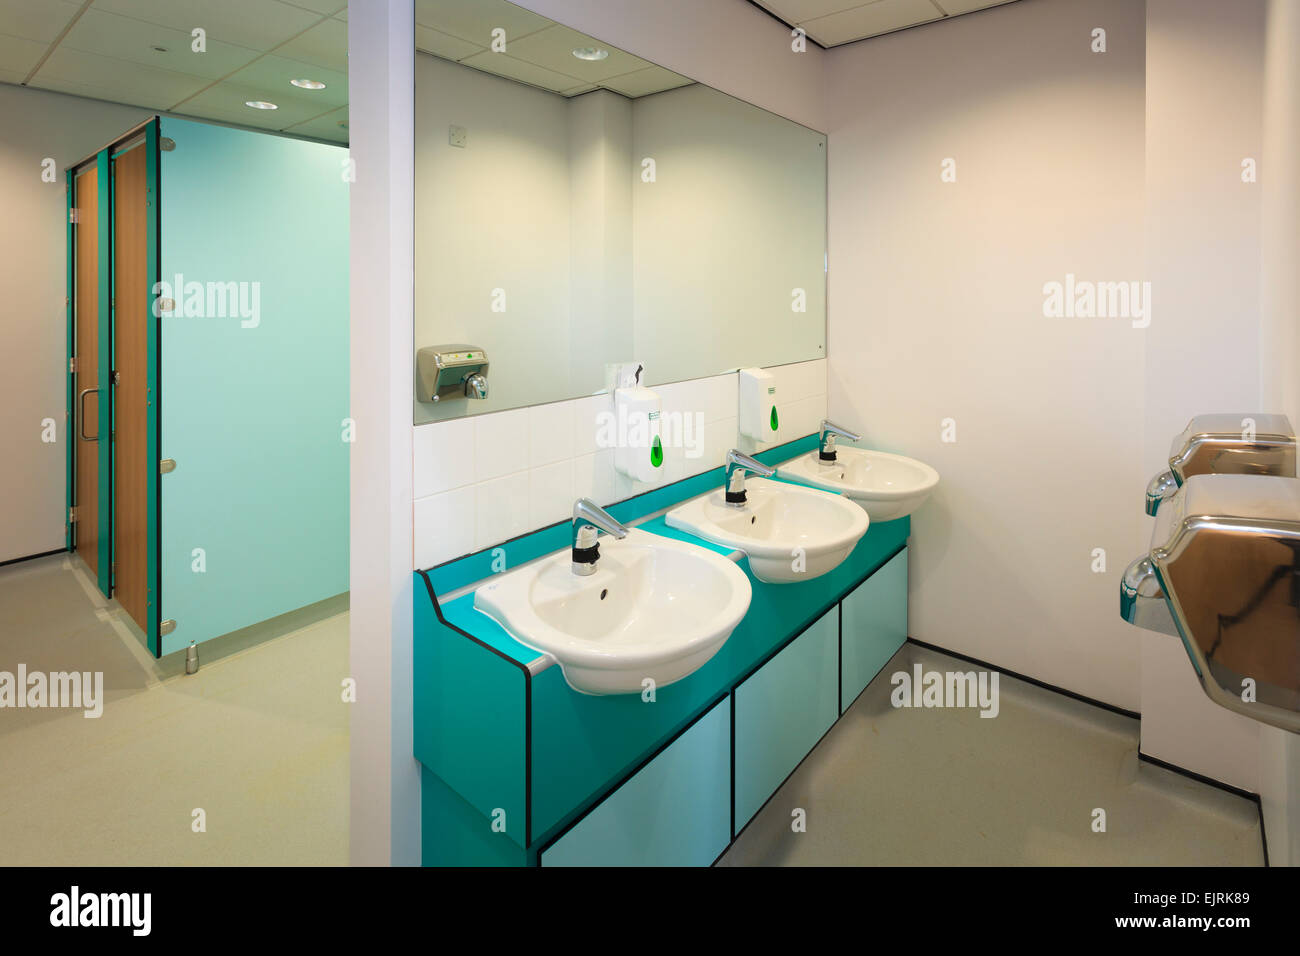 Wash basins, hand dryers and toilet cubicals of modern restroom ...